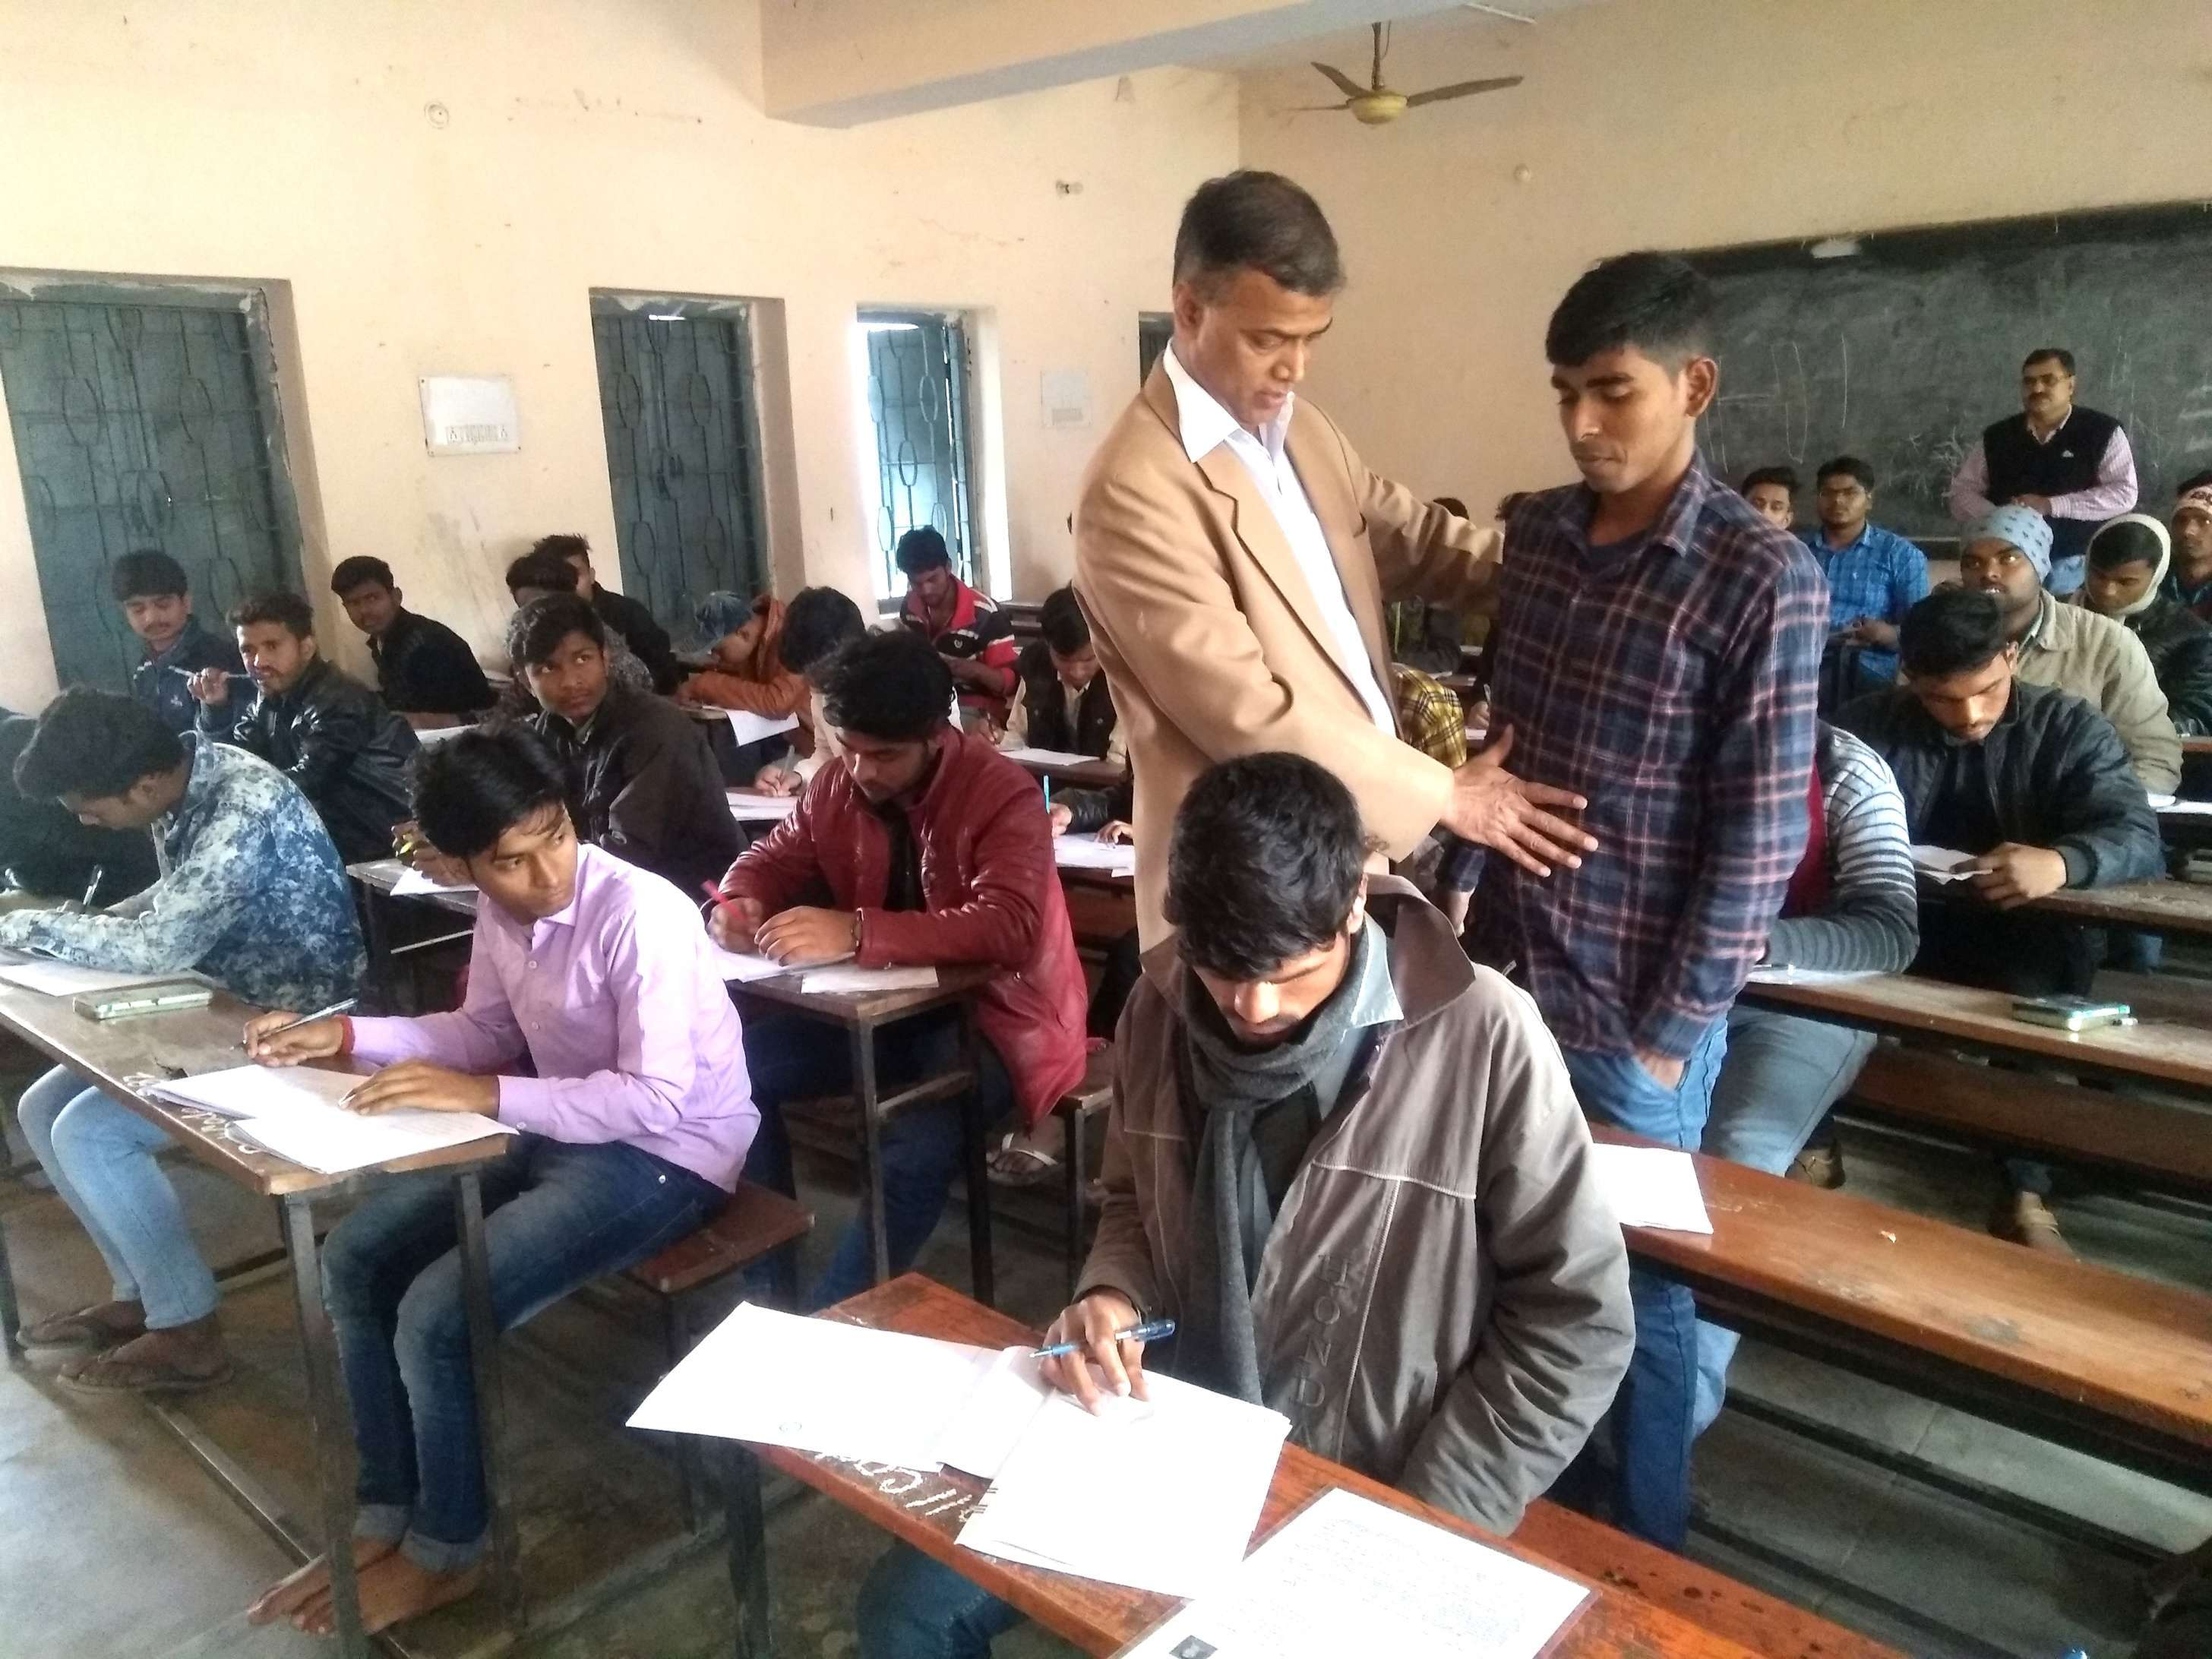 4dccebf573 Students cheating in exam latest news videos and photos jpg 2912x2184  Students india education cheating